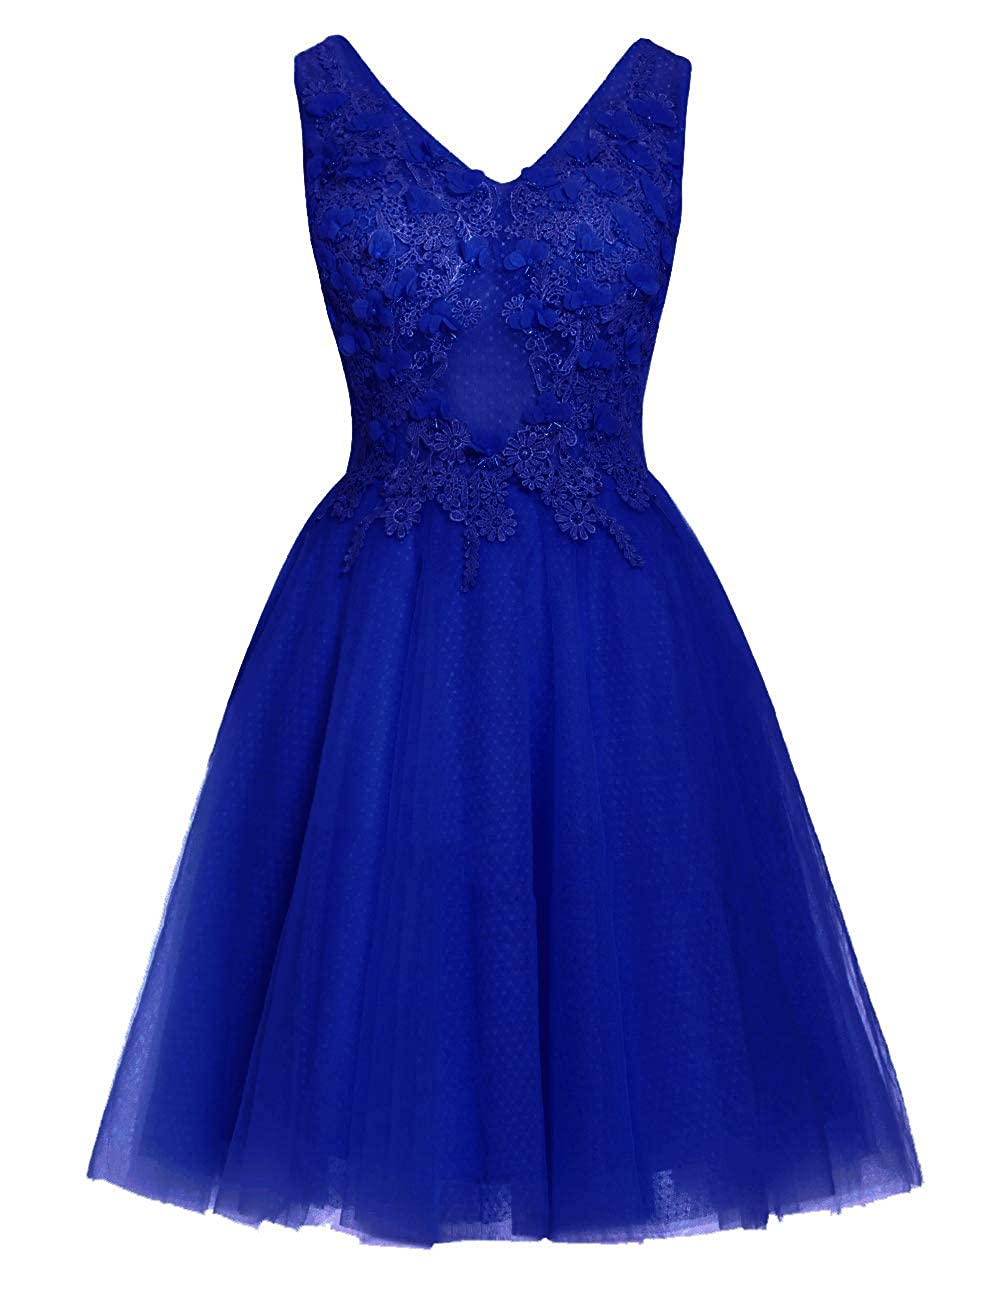 Royal bluee Uther Short Homecoming Dresses Lace Appliques 2018 Prom Wedding Party Dress V Neck